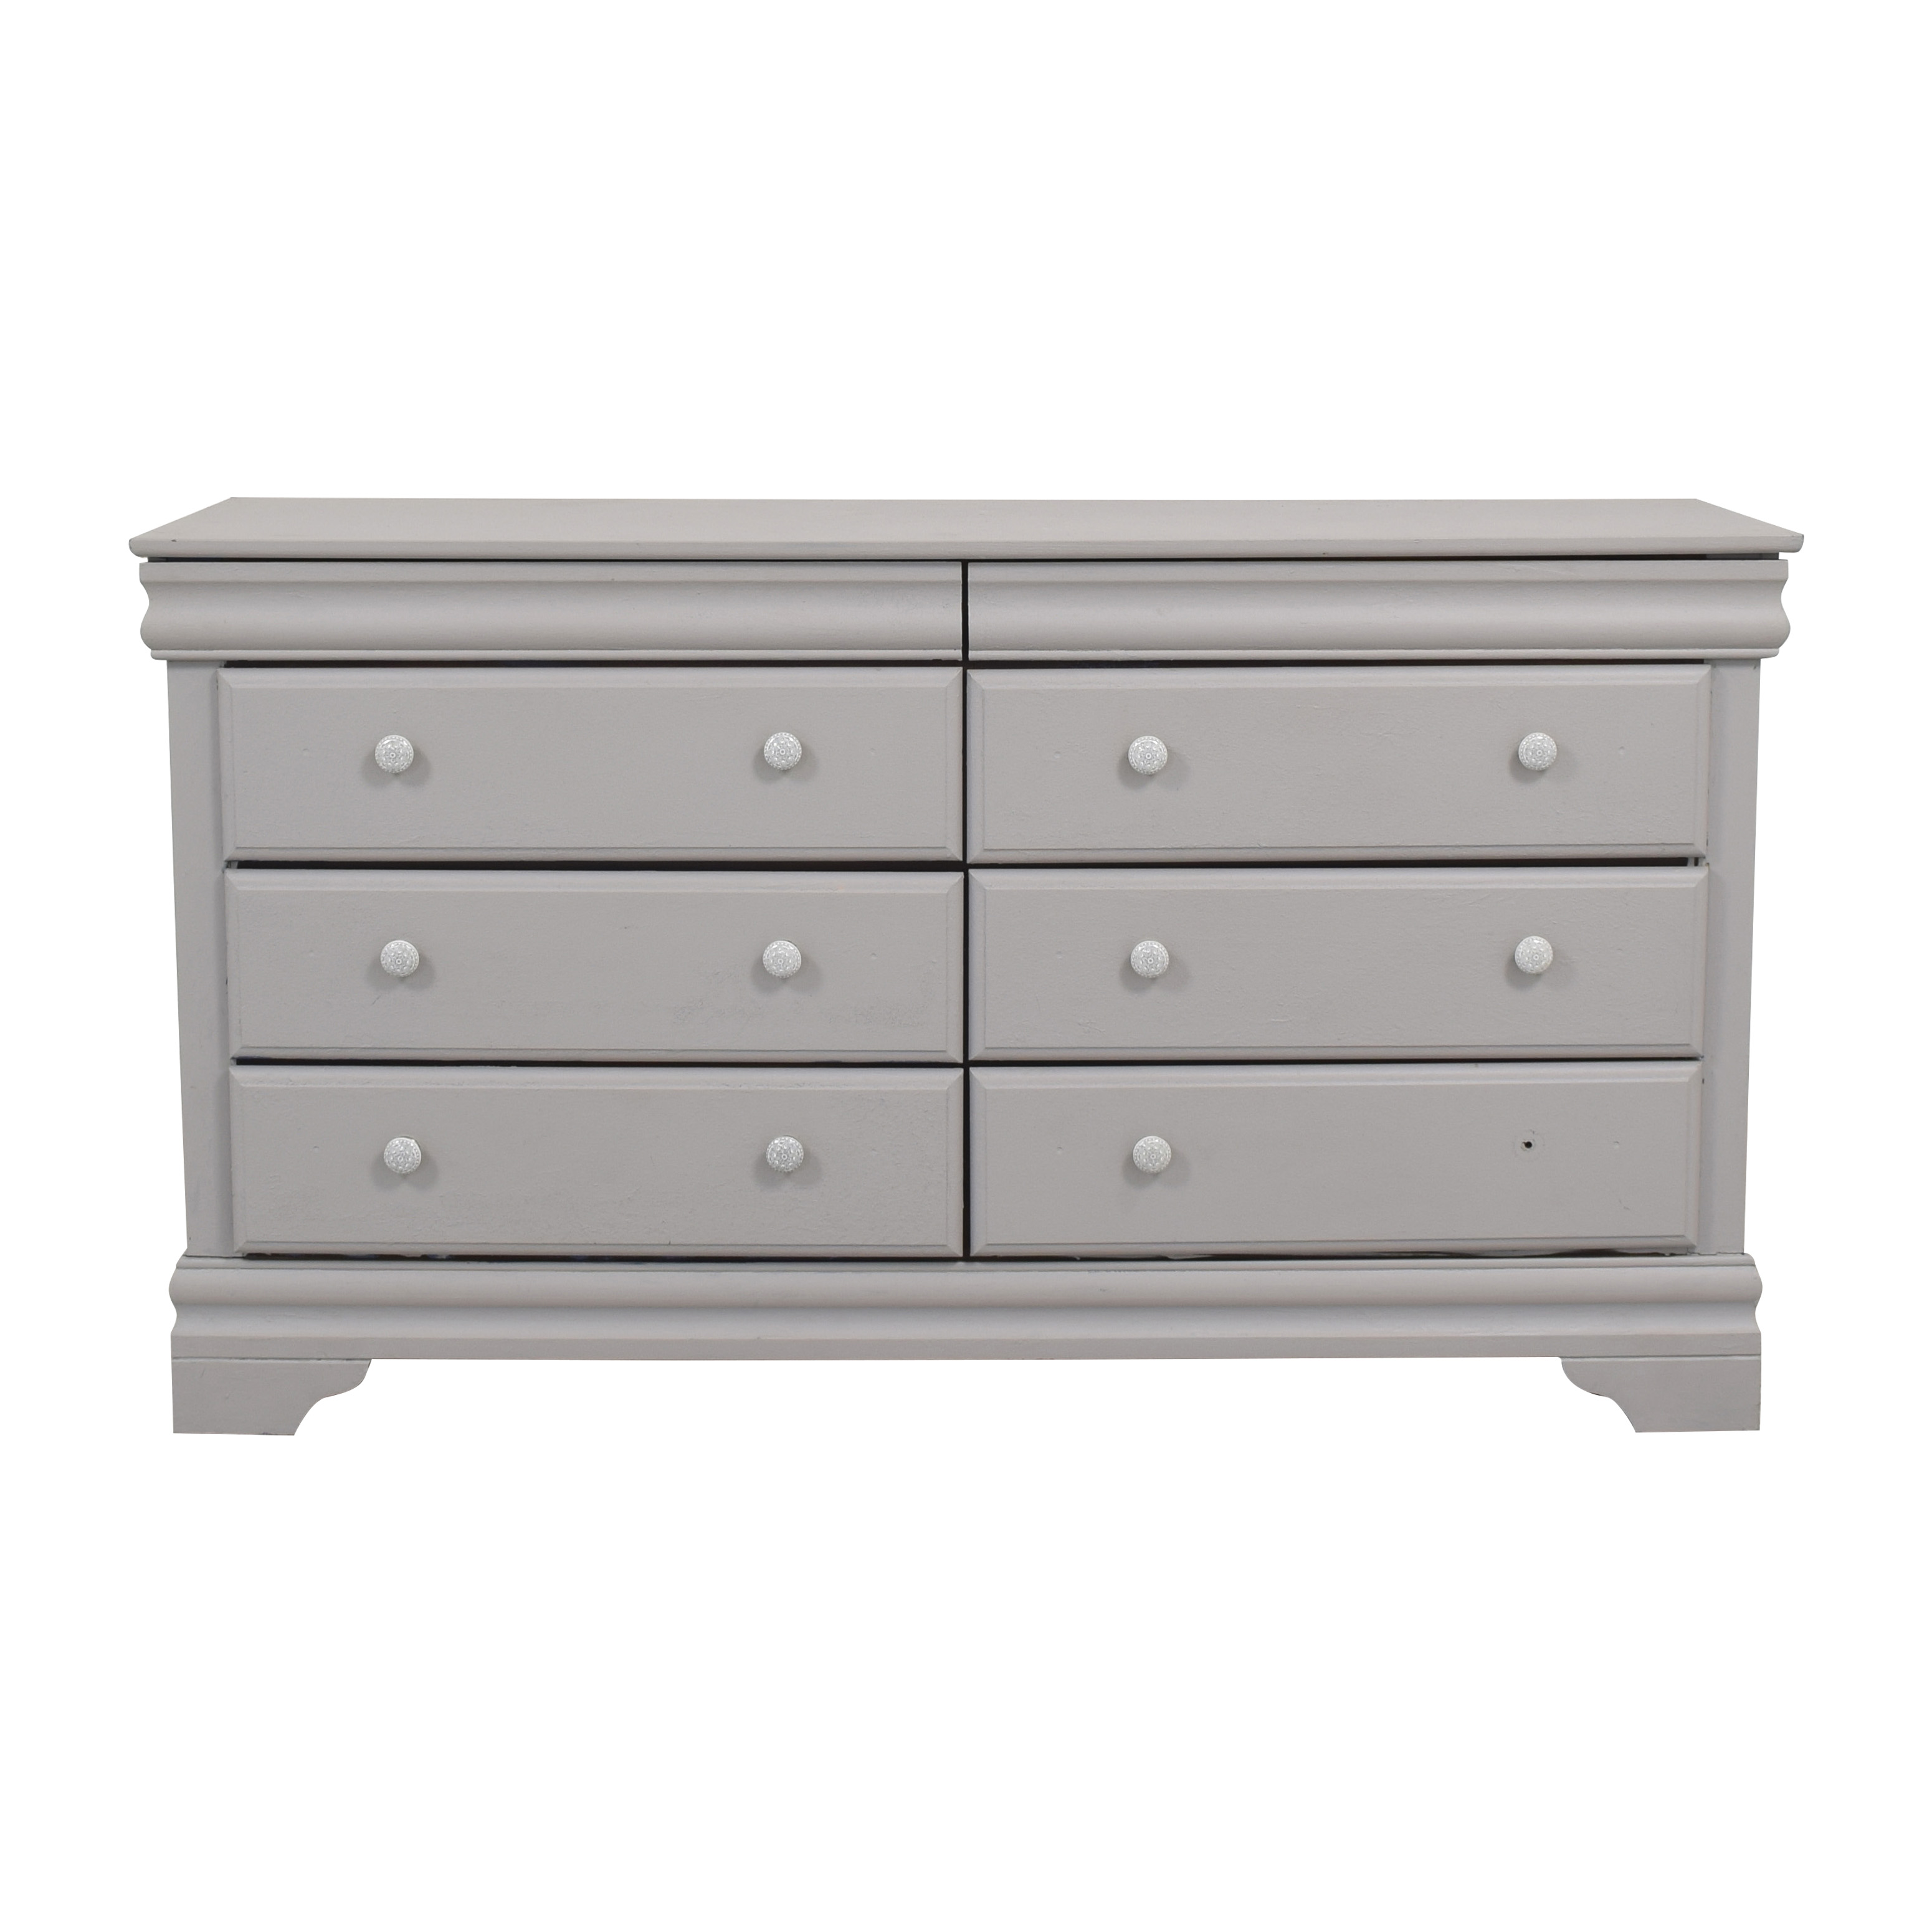 Vaughan-Bassett Vaughan-Bassett Grey Eight Drawer Dresser dimensions